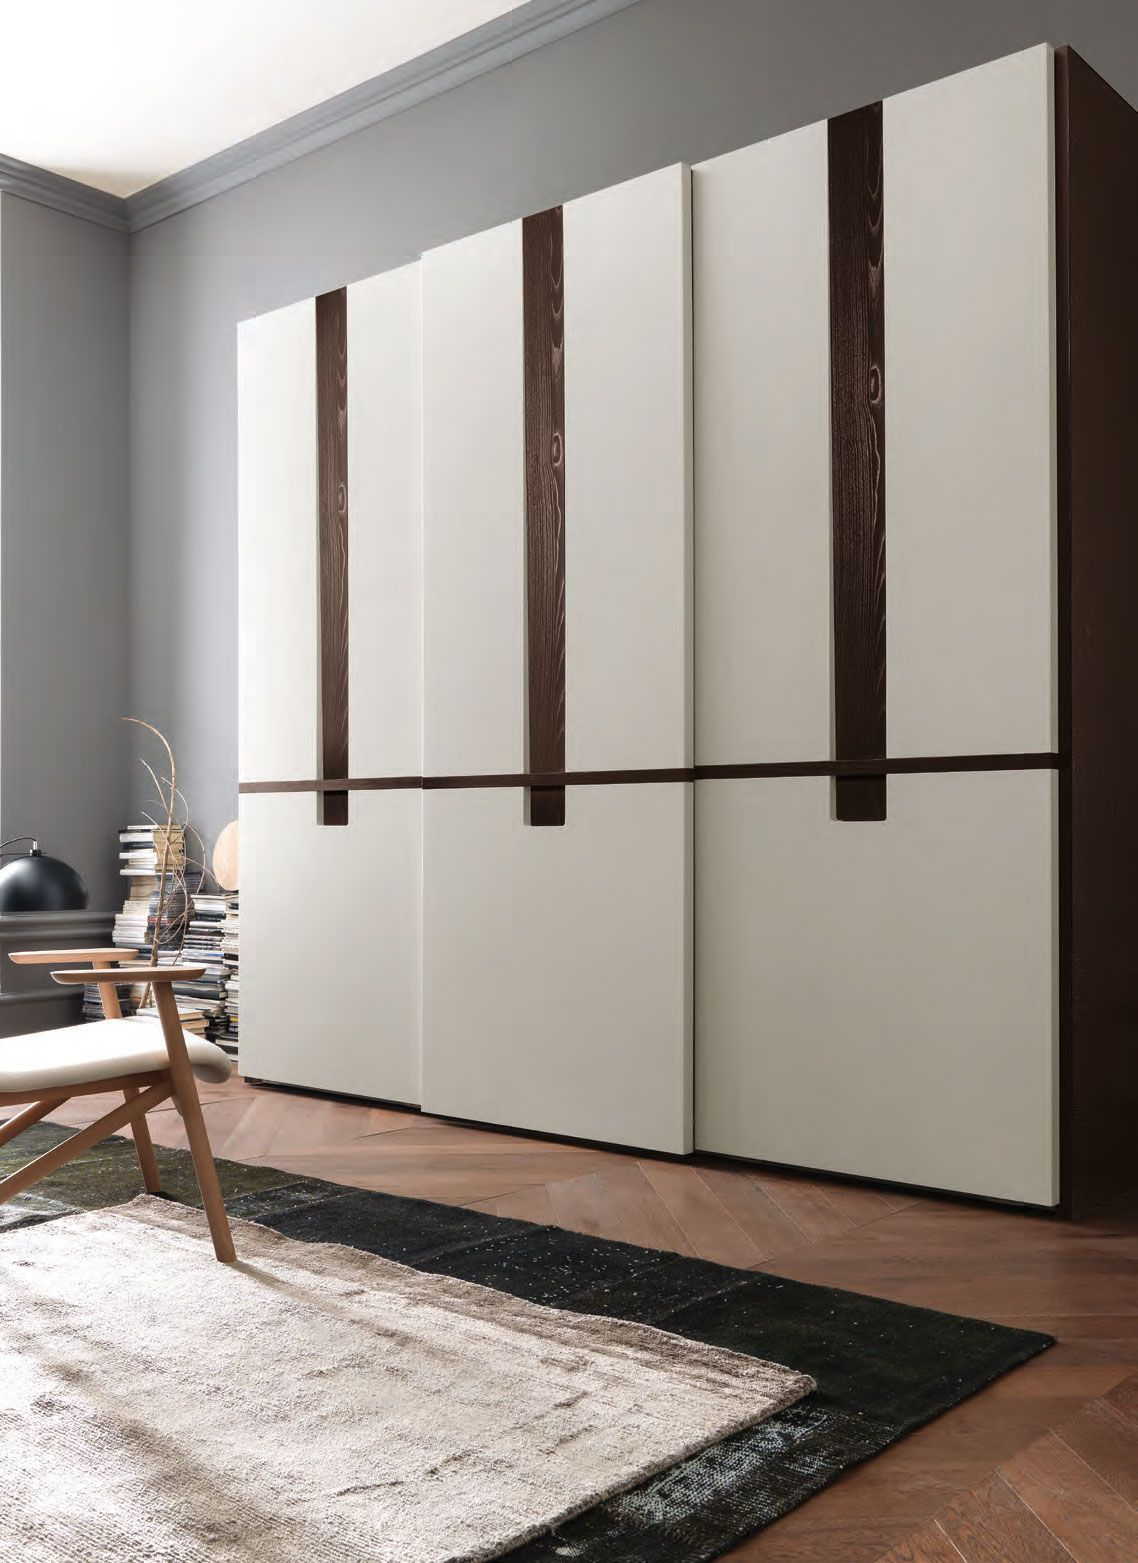 35 Modern Wardrobe Furniture Designs Wardrobe Furniture Modern 35 Modern  Wardrobe Furniture Designs. Furniture Design Part 40